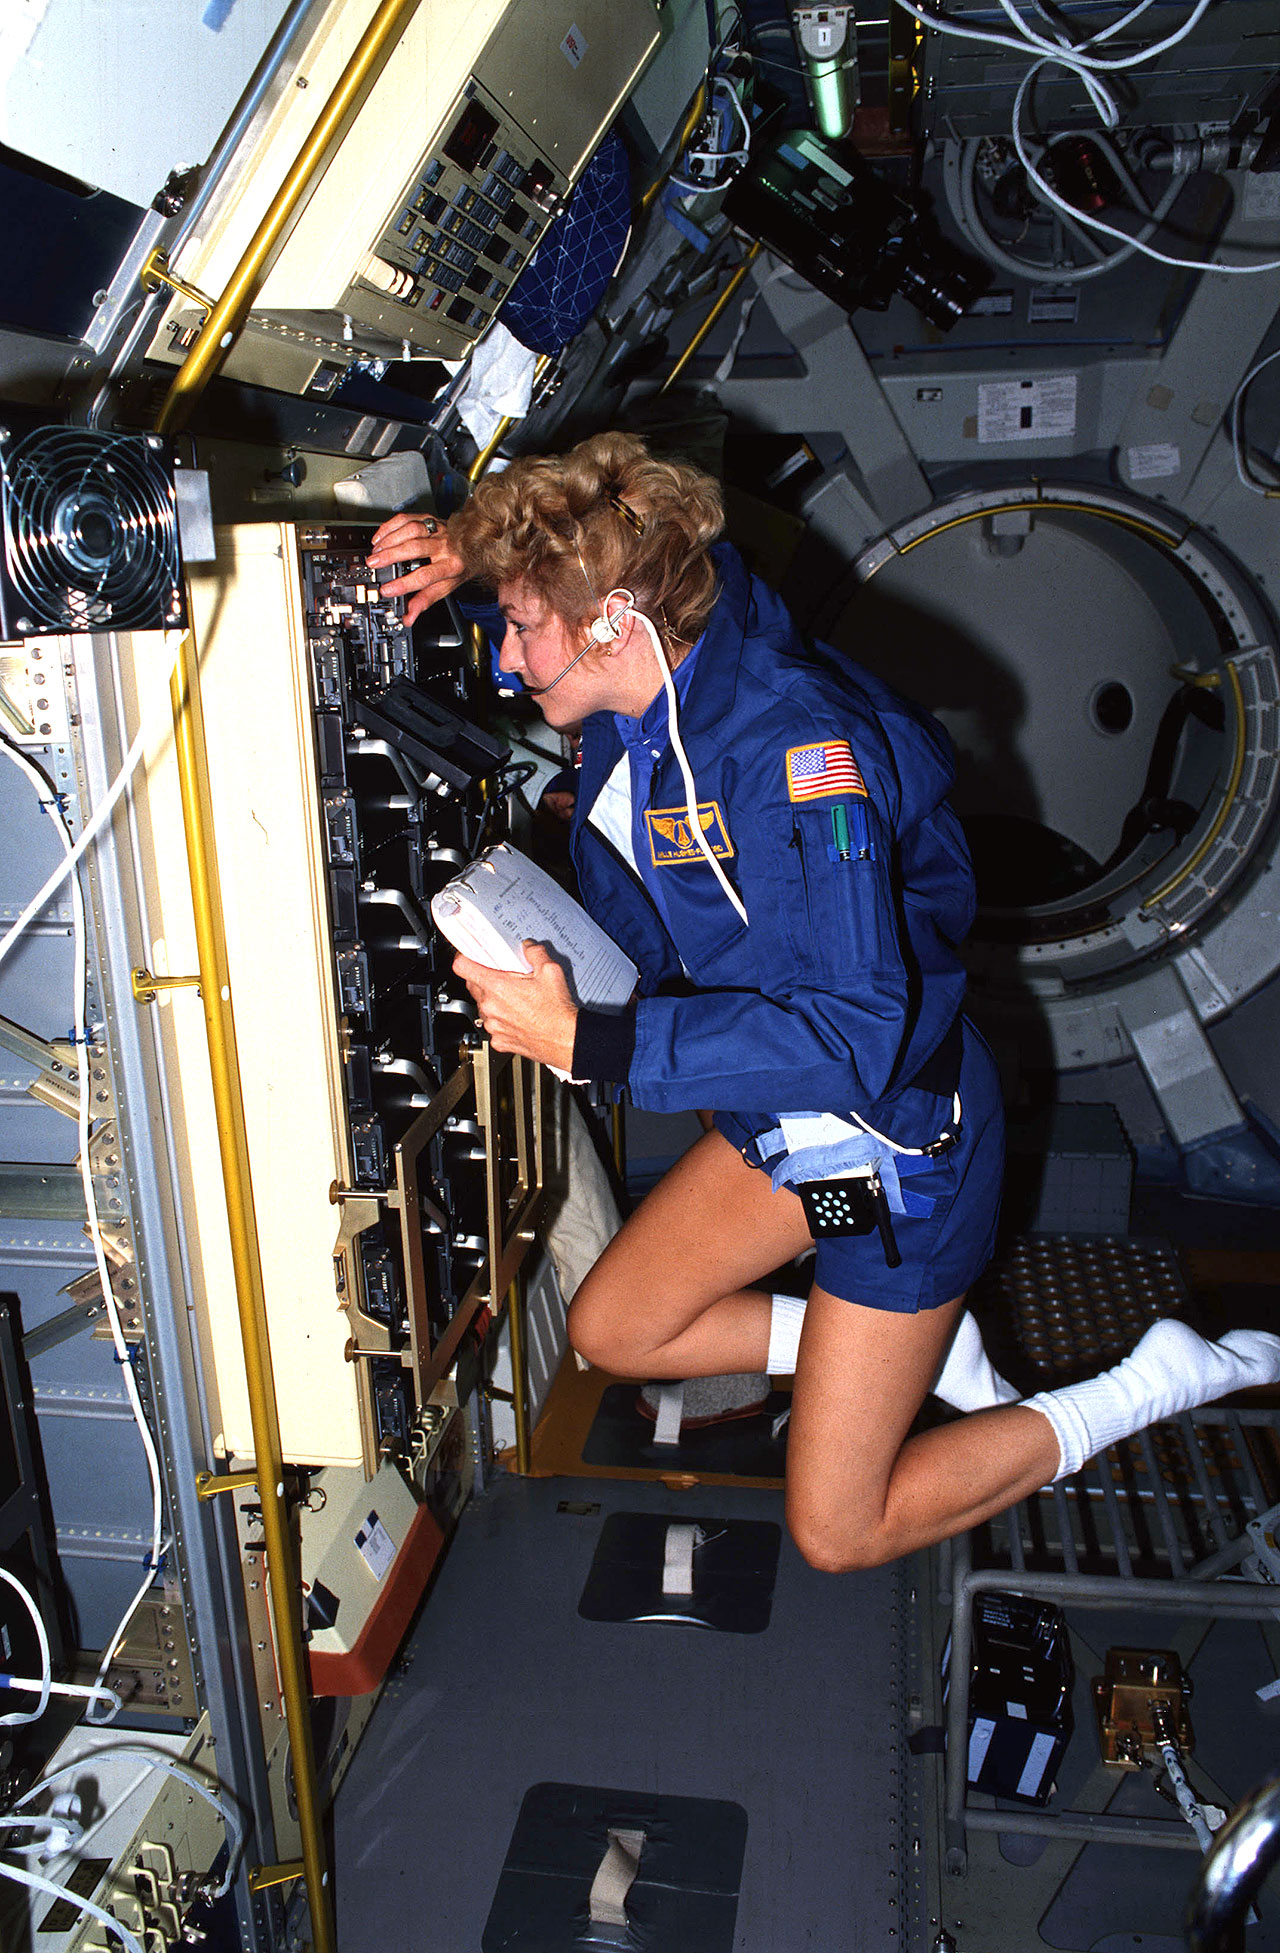 STS-40 payload specialist Millie Hughes-Fulford works inside the Space Life Sciences-1 (SLS-1) Spacelab module inside the space shuttle Columbia's payload bay in June 1991.